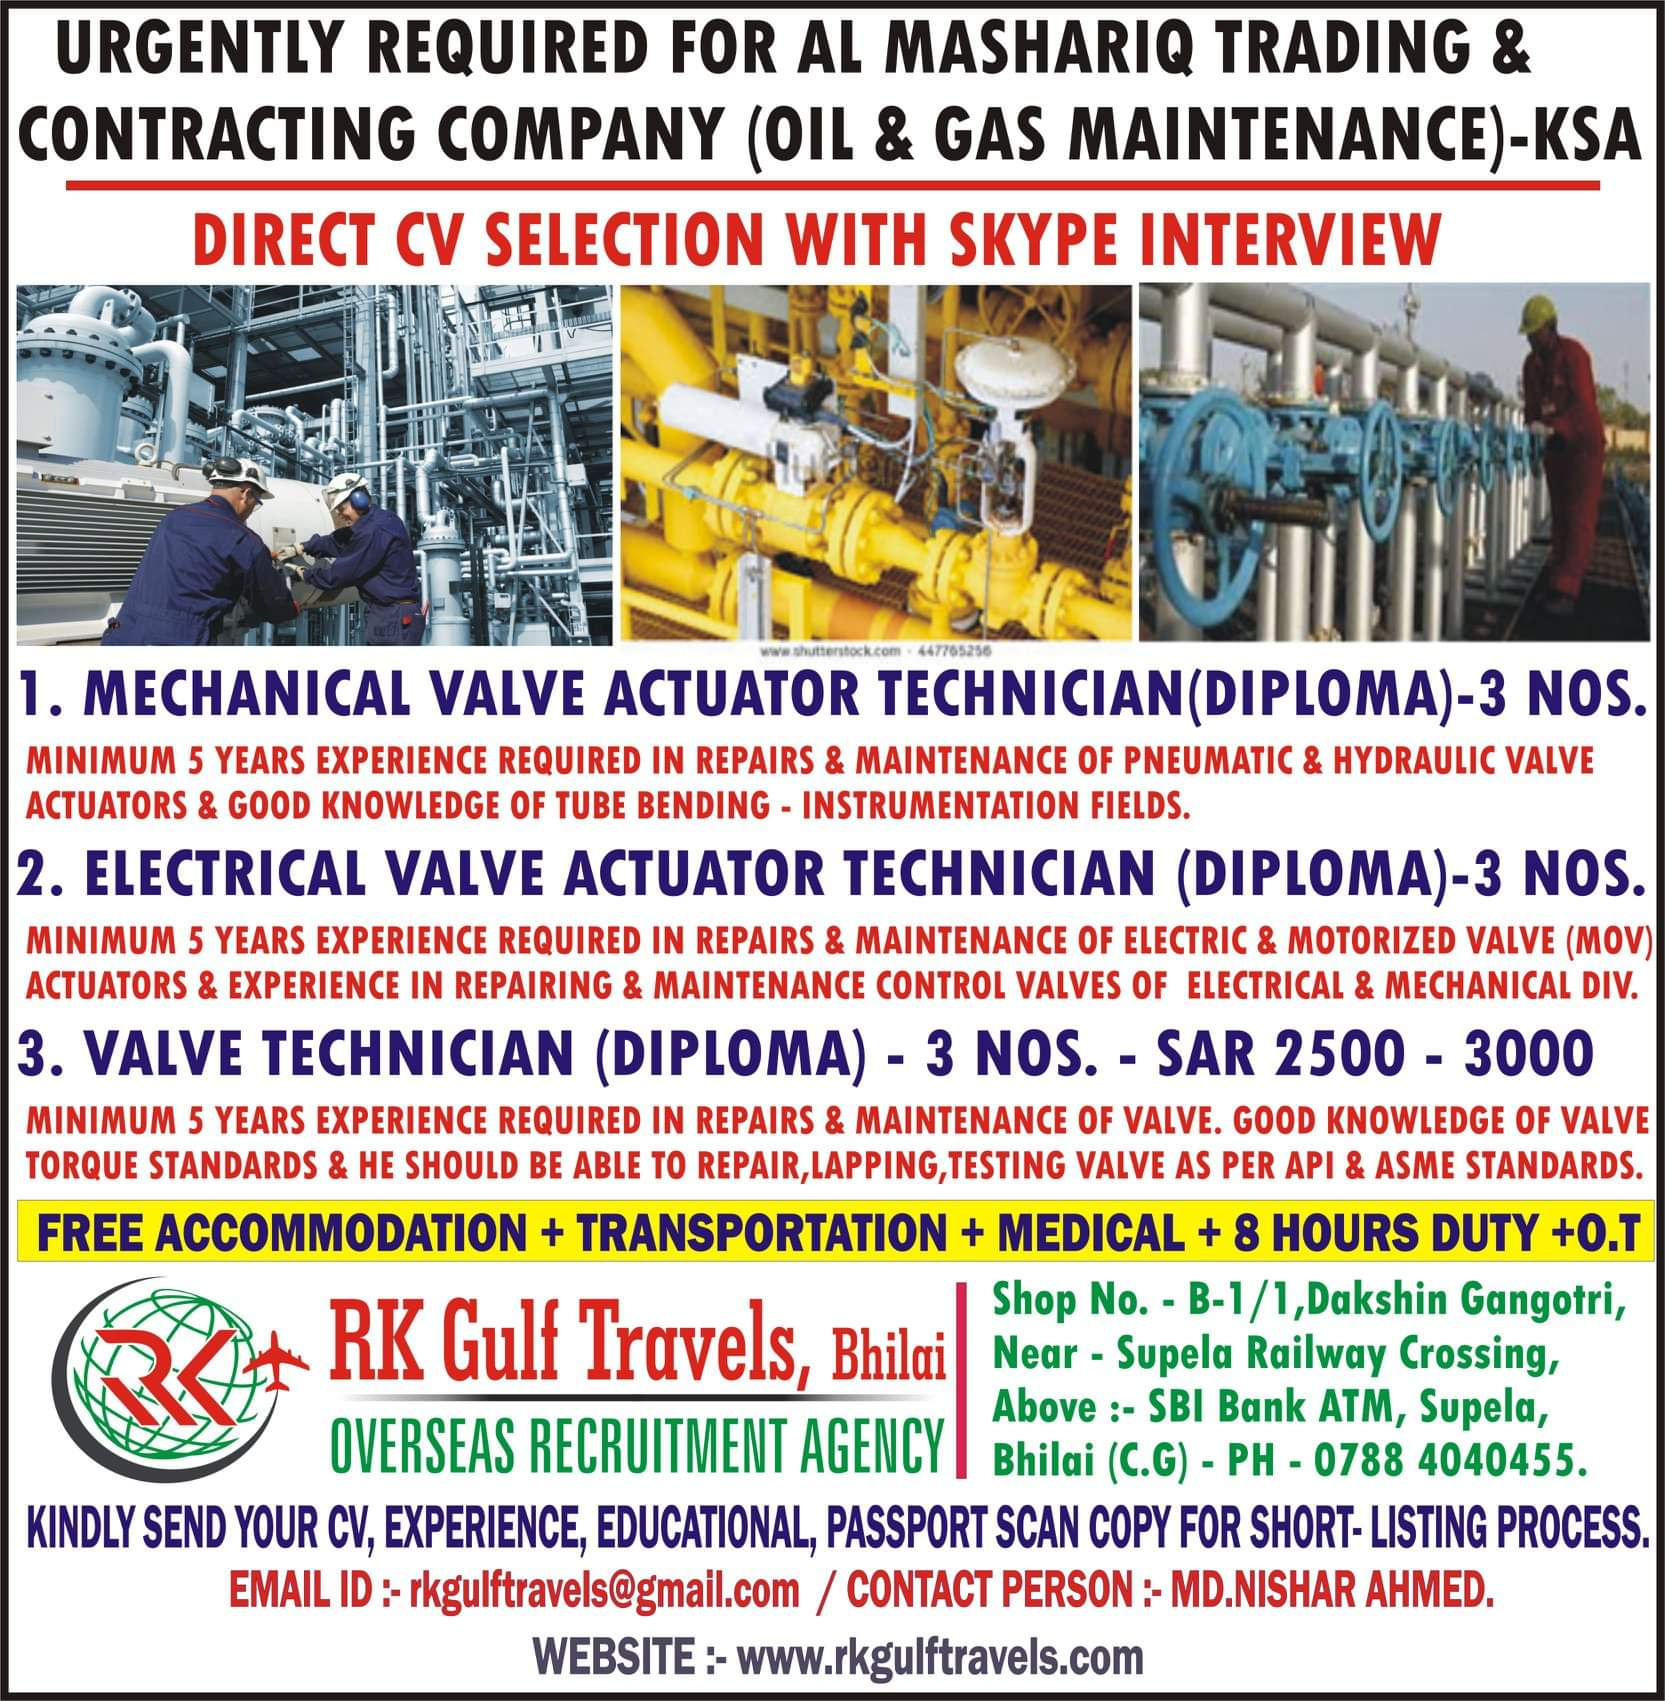 AL MASHARIQ TRADING AND CONTRACTING COMPANY ( OIL AND GAS MAINTENANCE)-KSA